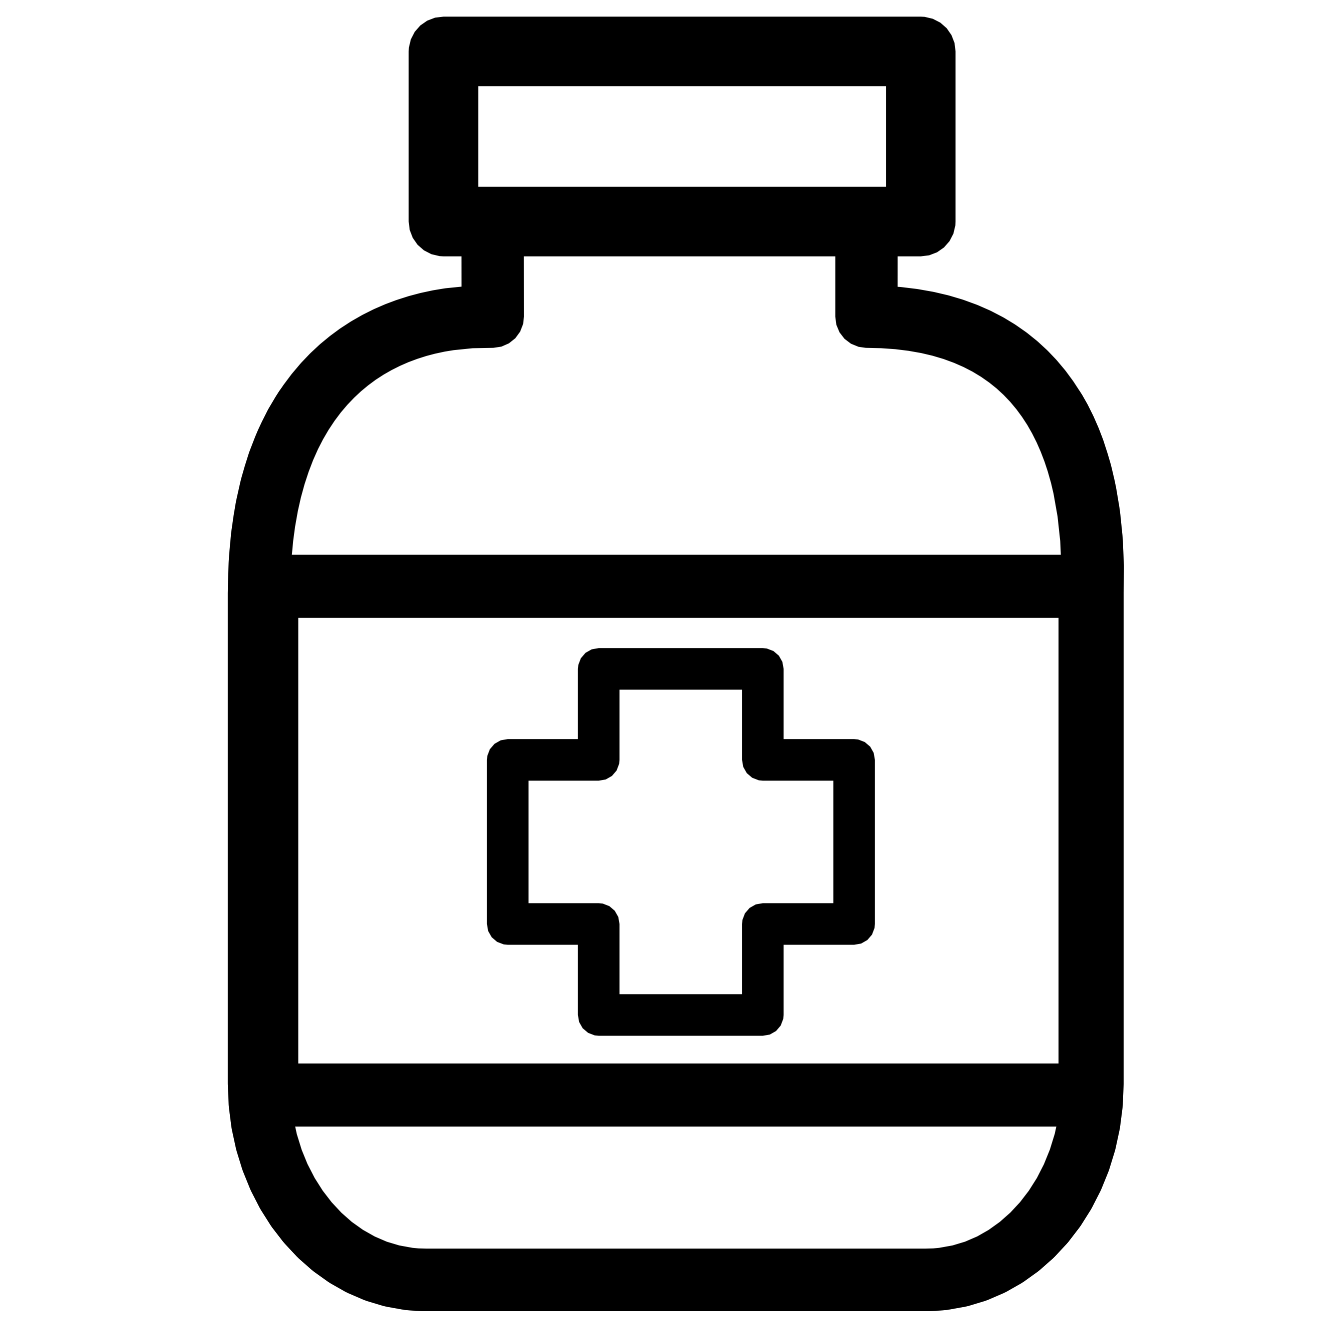 medication clipart black and white